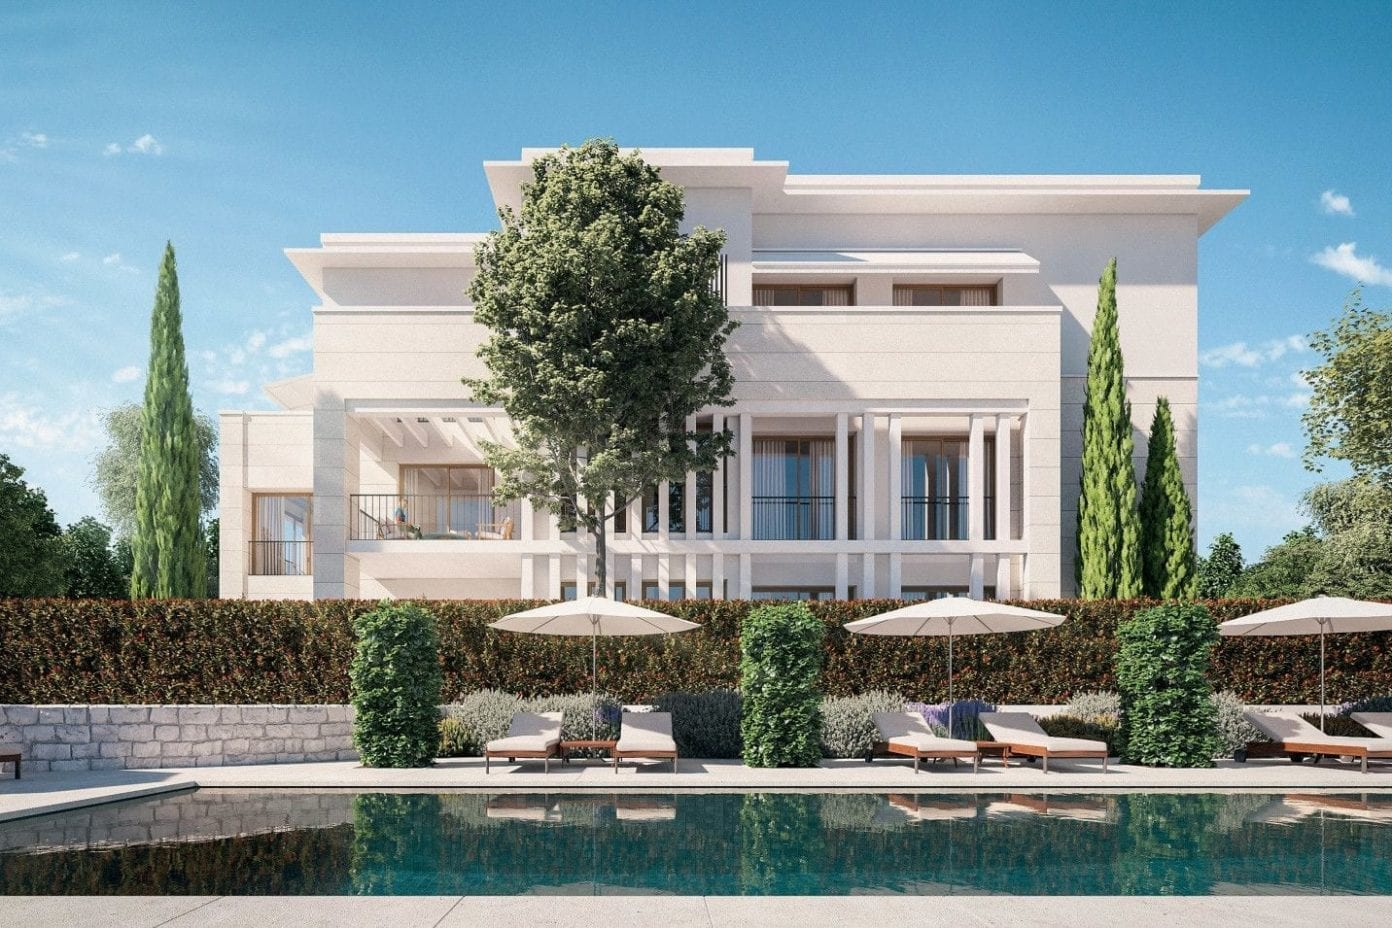 Christian Hannover and Single Home to Create a luxury development with Wellington